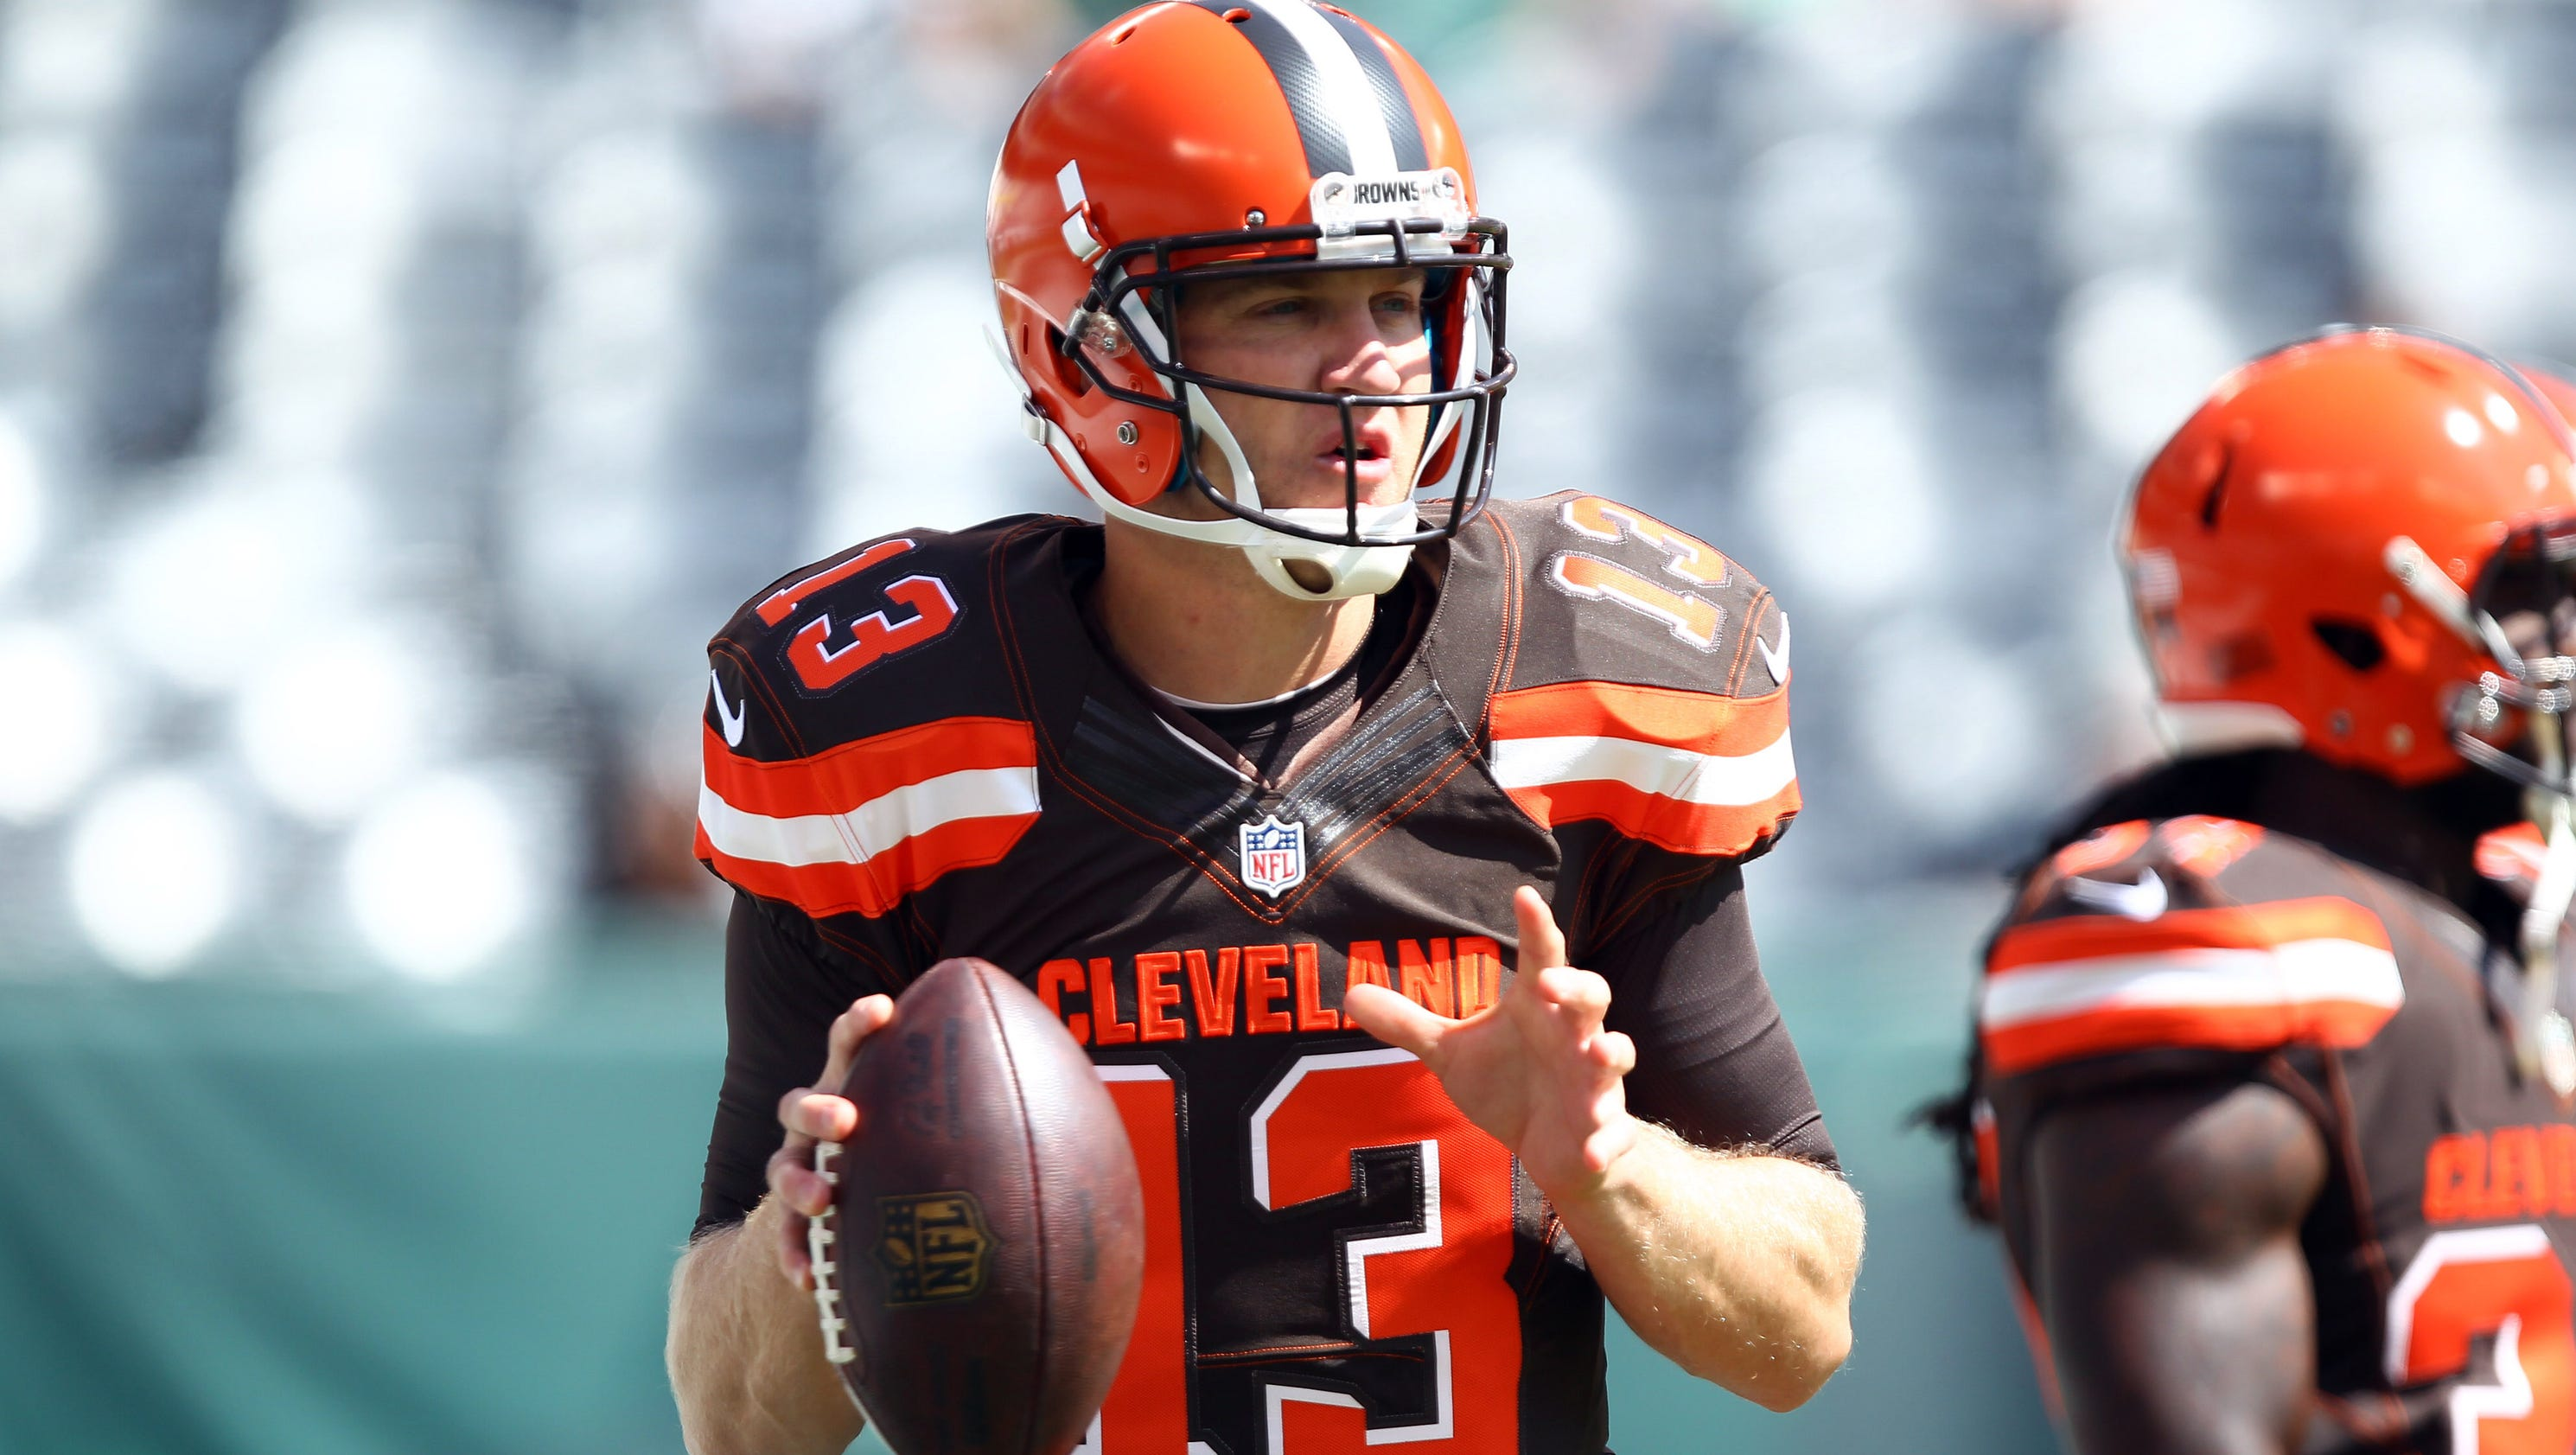 Cleveland Browns turn back to Josh McCown after Johnny Manziel